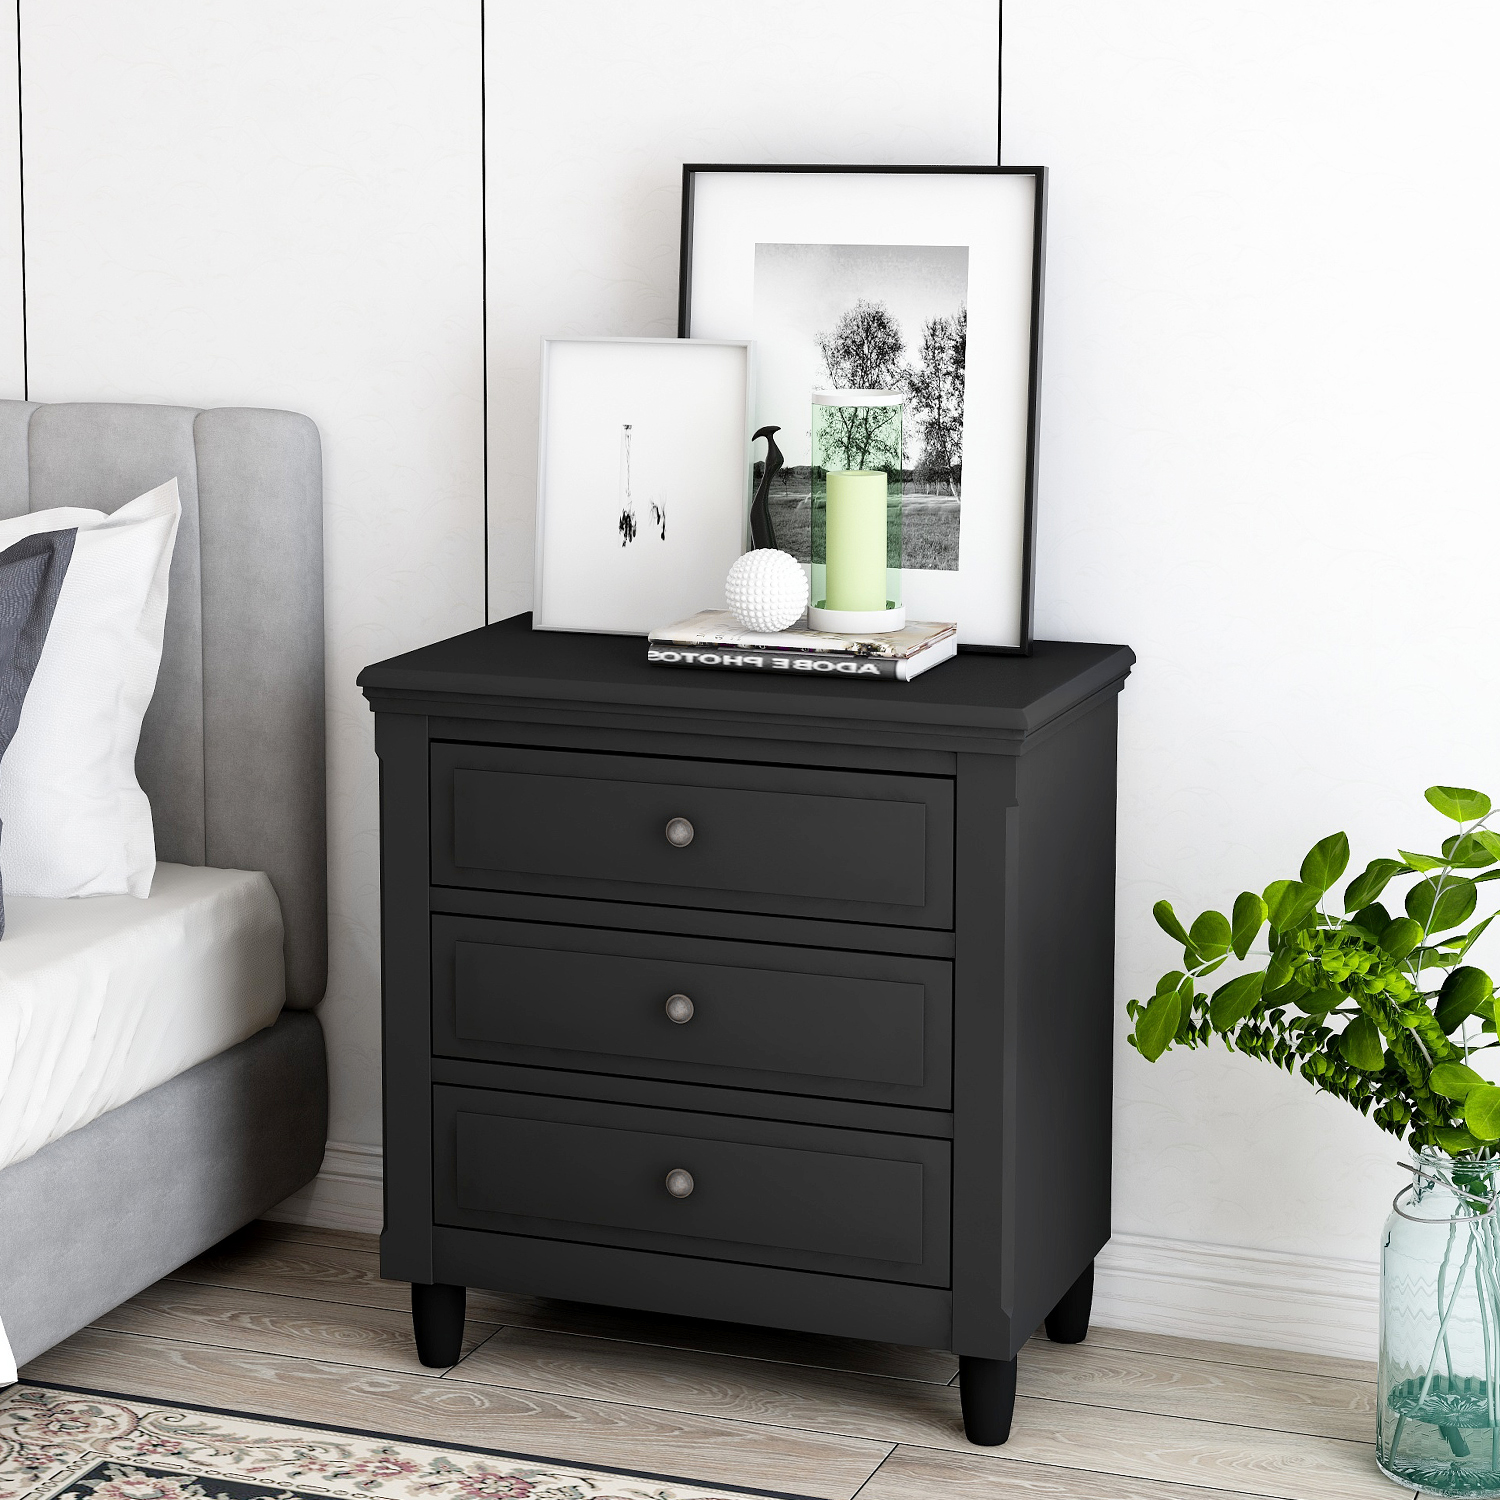 Endside Table With Three Drawers Wooden Bedroom Nightstand Classic Contemporary Style File Cabinet Storage Decoration Bedside Table For Bedroom Living Room 28 H X 28 W X 17 D Black Y0290